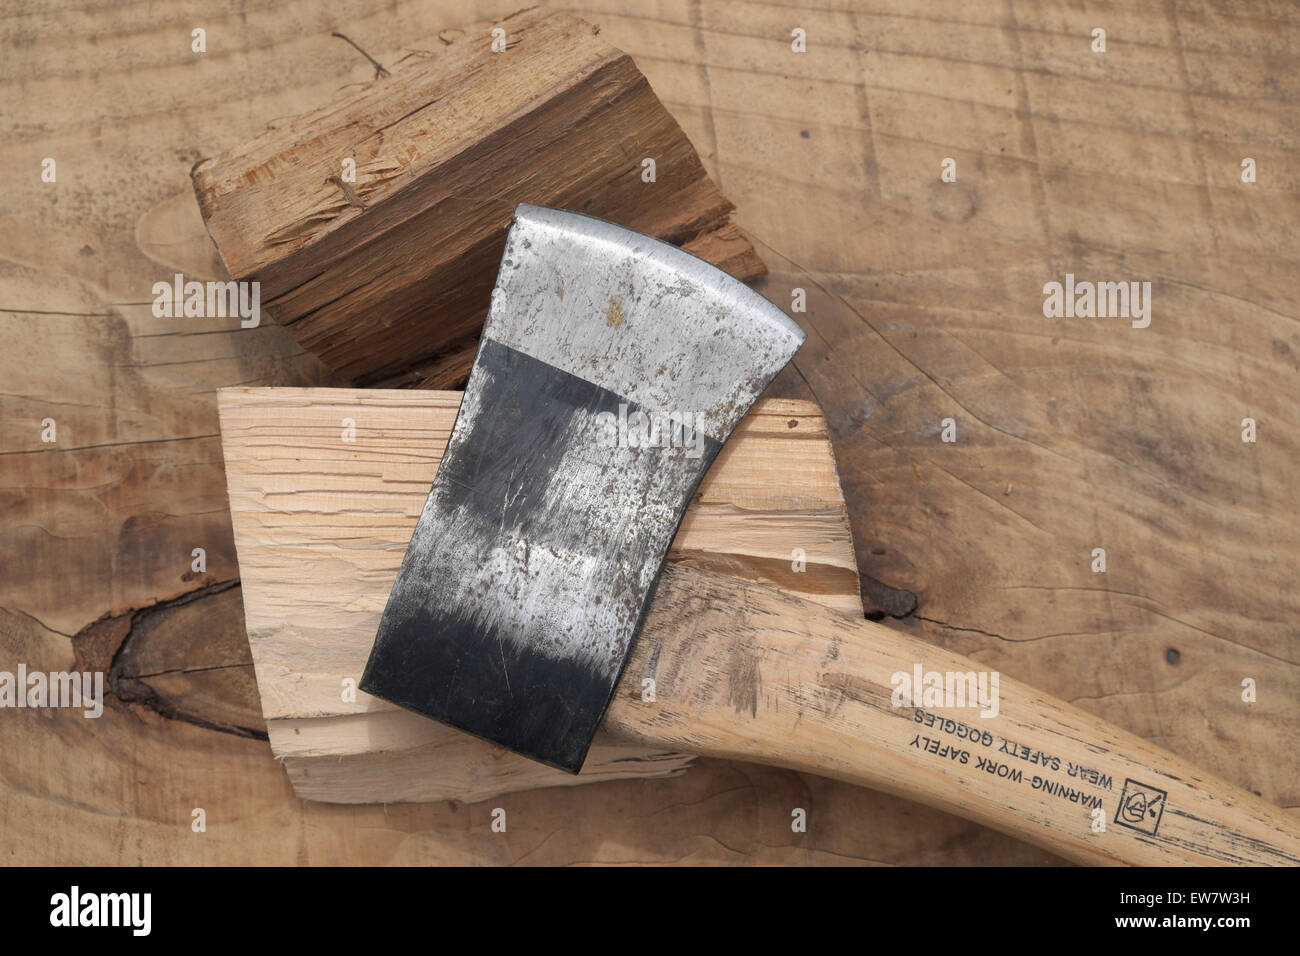 Small chopping axe for splitting firewood logs UK - Stock Image